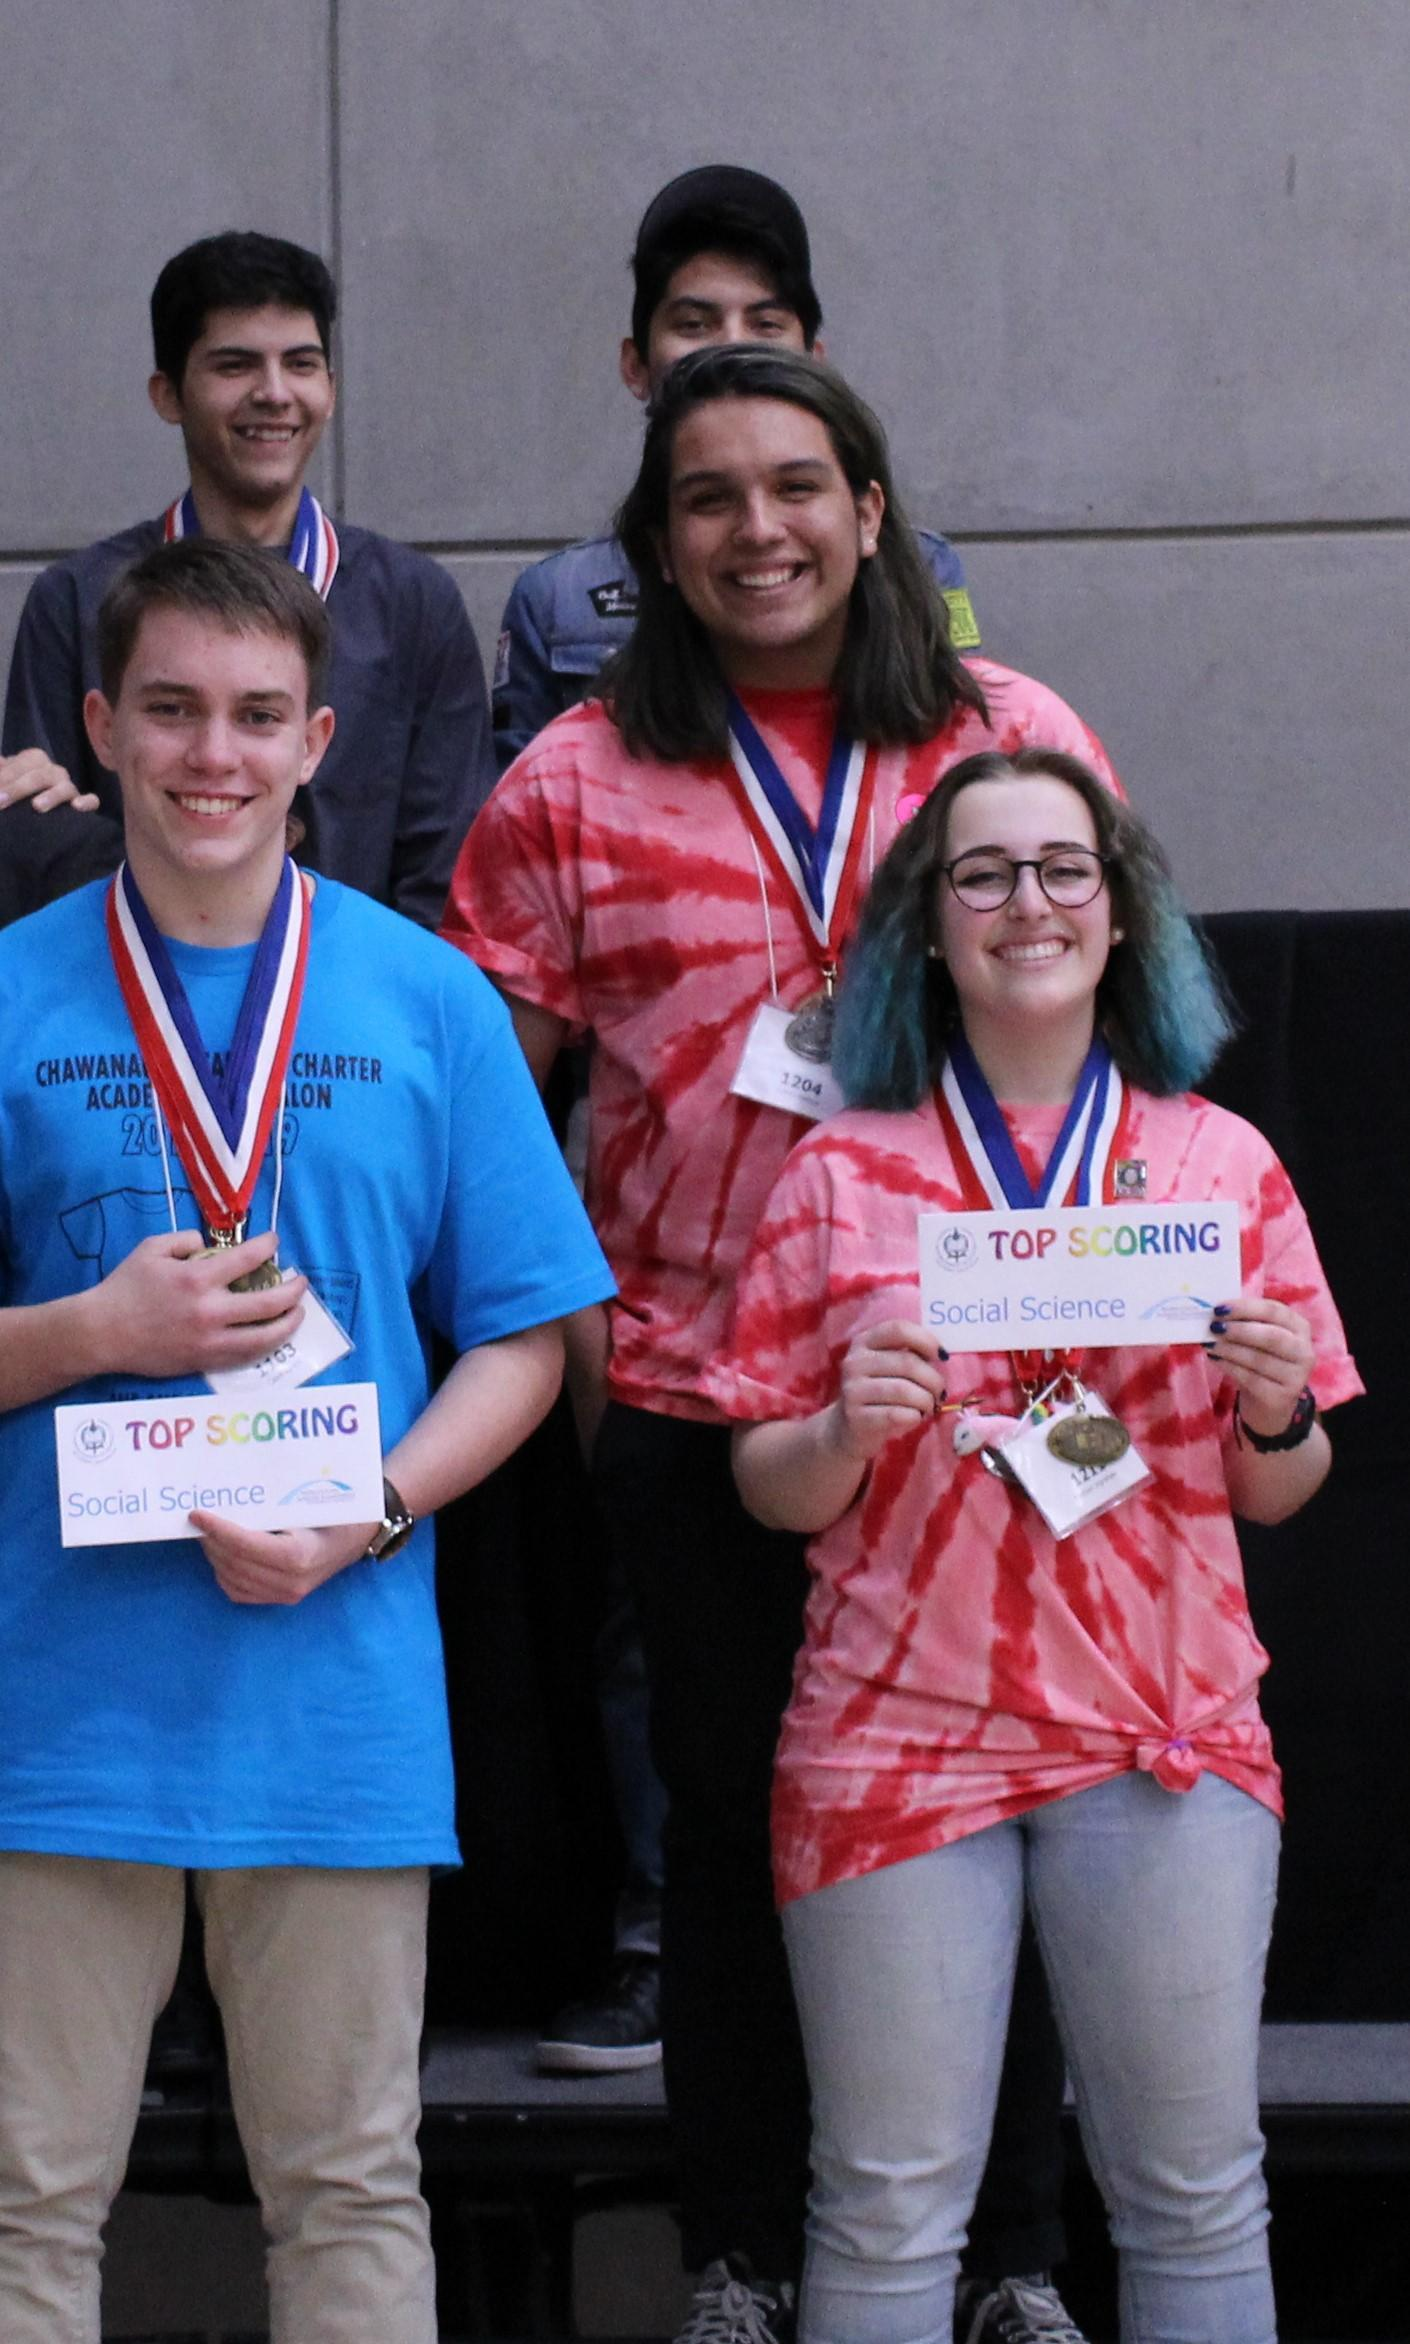 Social Science Medalists: Jovanny Martinez, Scholastic Silver; Madison Ingraham, Honor Gold